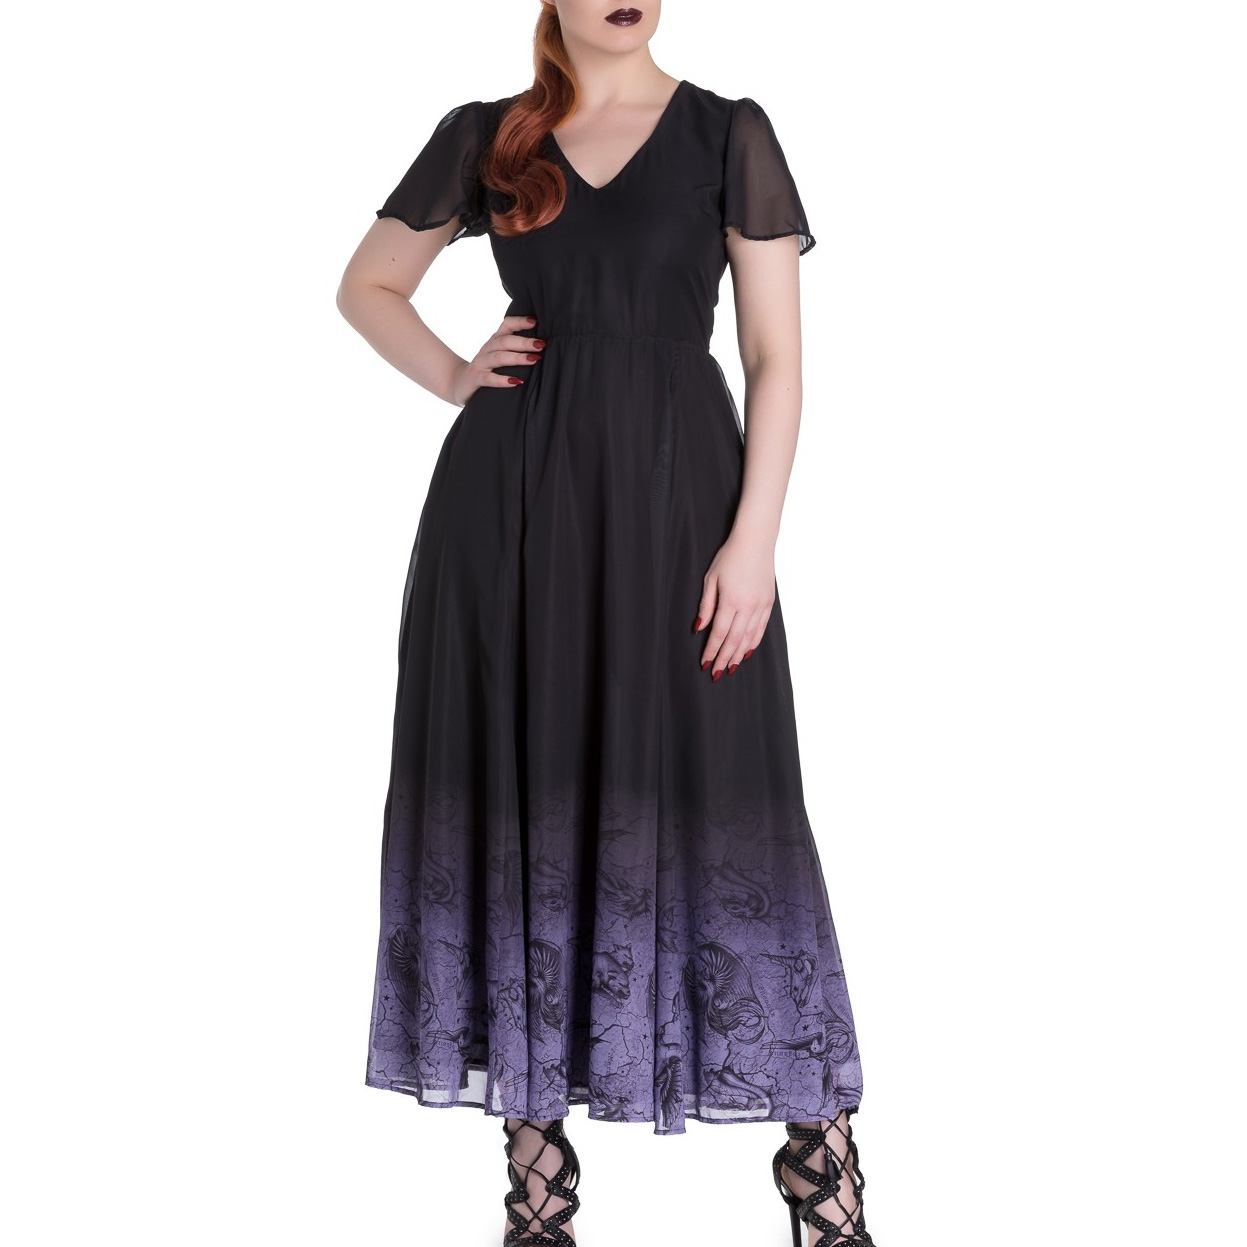 Hell-Bunny-Spin-Doctor-Goth-Maxi-Dress-EVADINE-Purple-Black-All-Sizes thumbnail 7